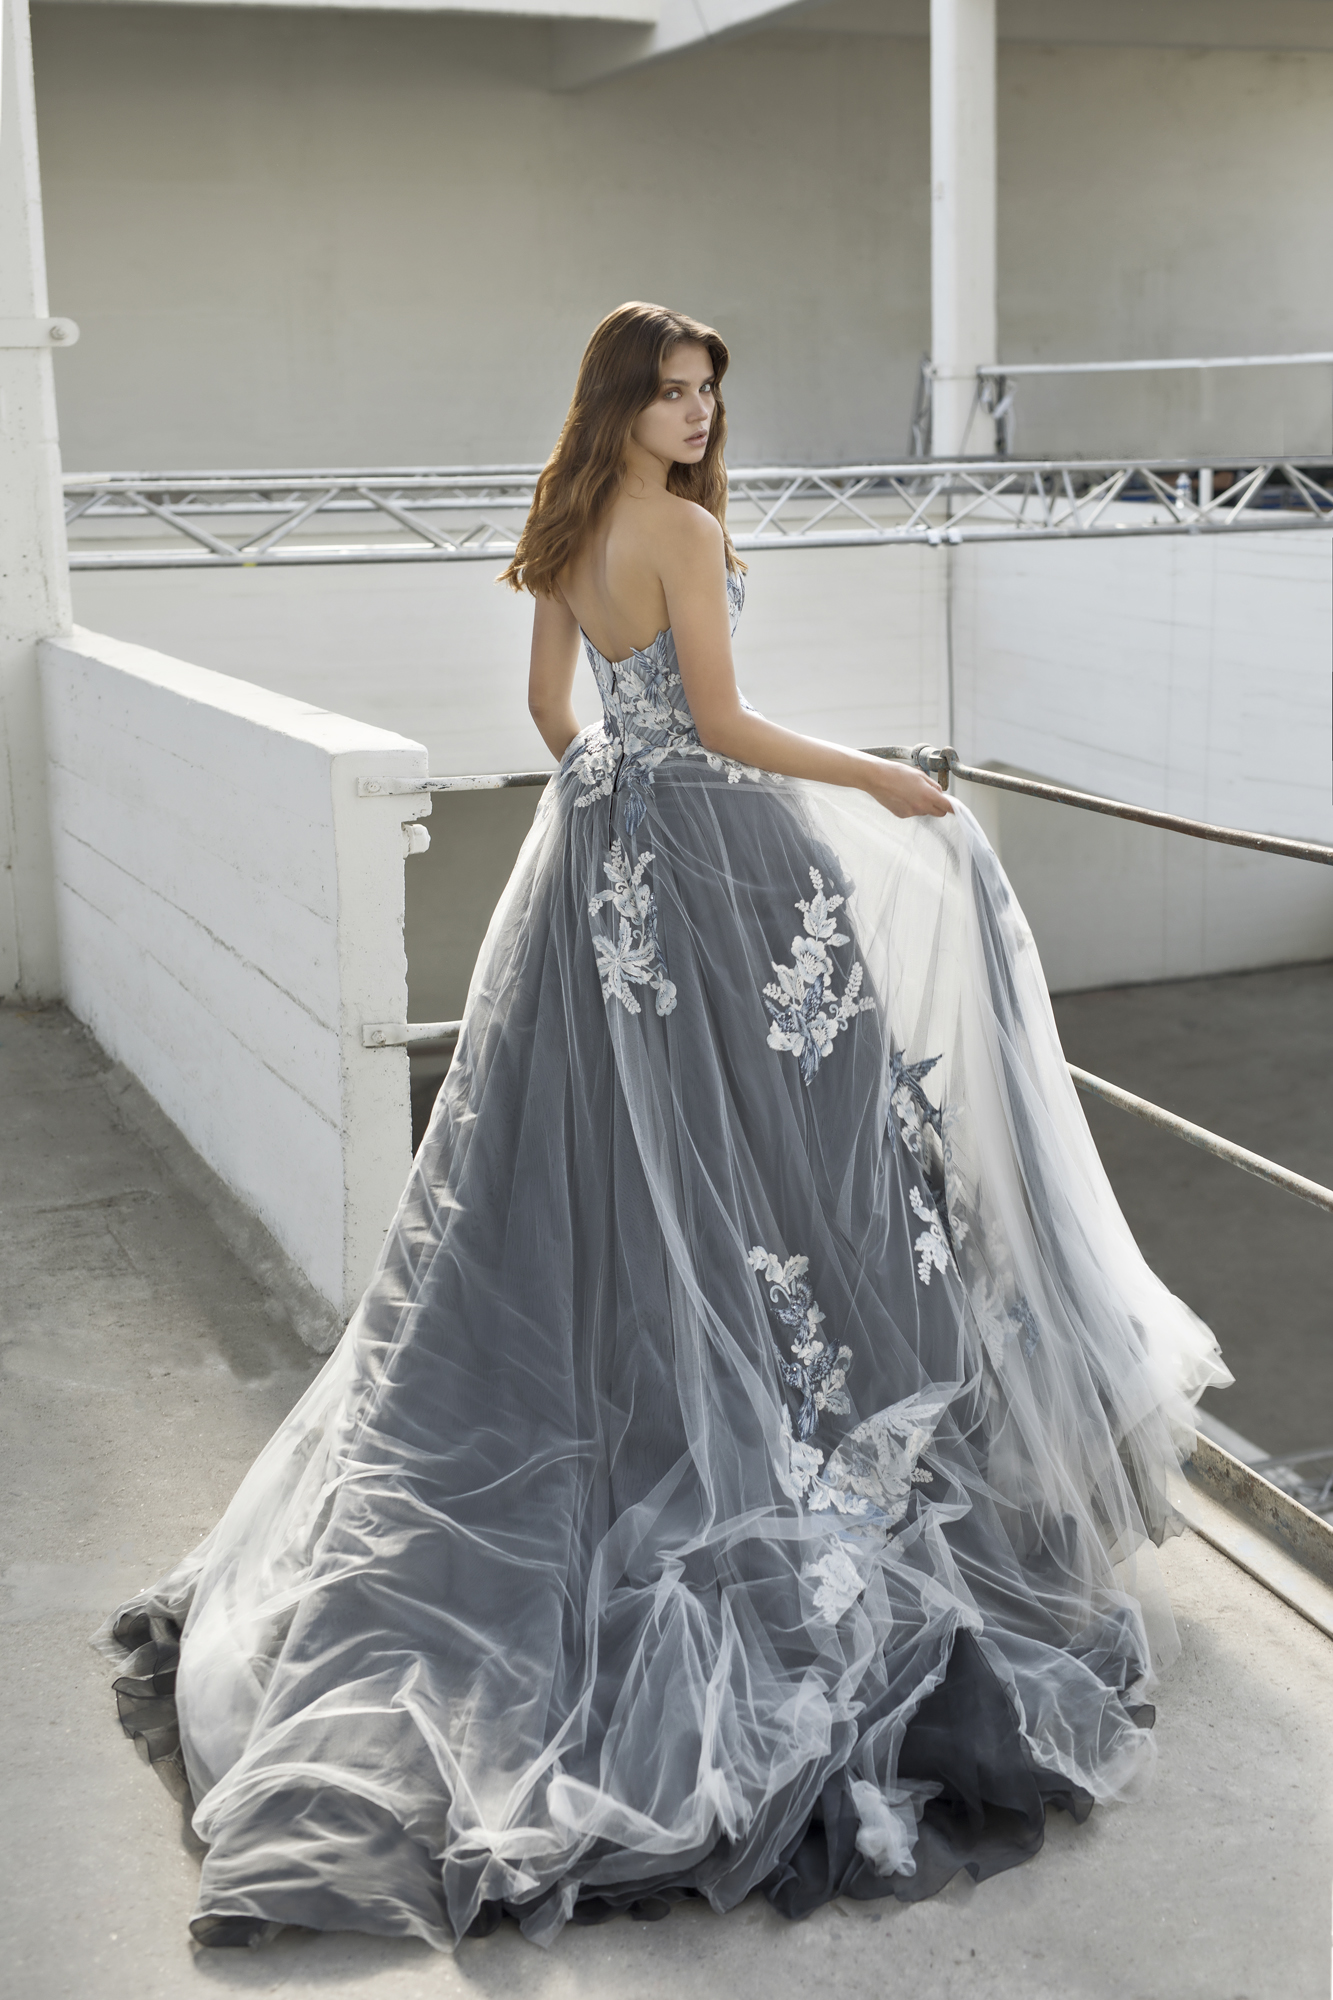 April 24th - Esmee by Modeca, a stunning black, blue and ivory wedding dress is arriving to our Surrey bridal shop in May 2019. Excited is an understatement!